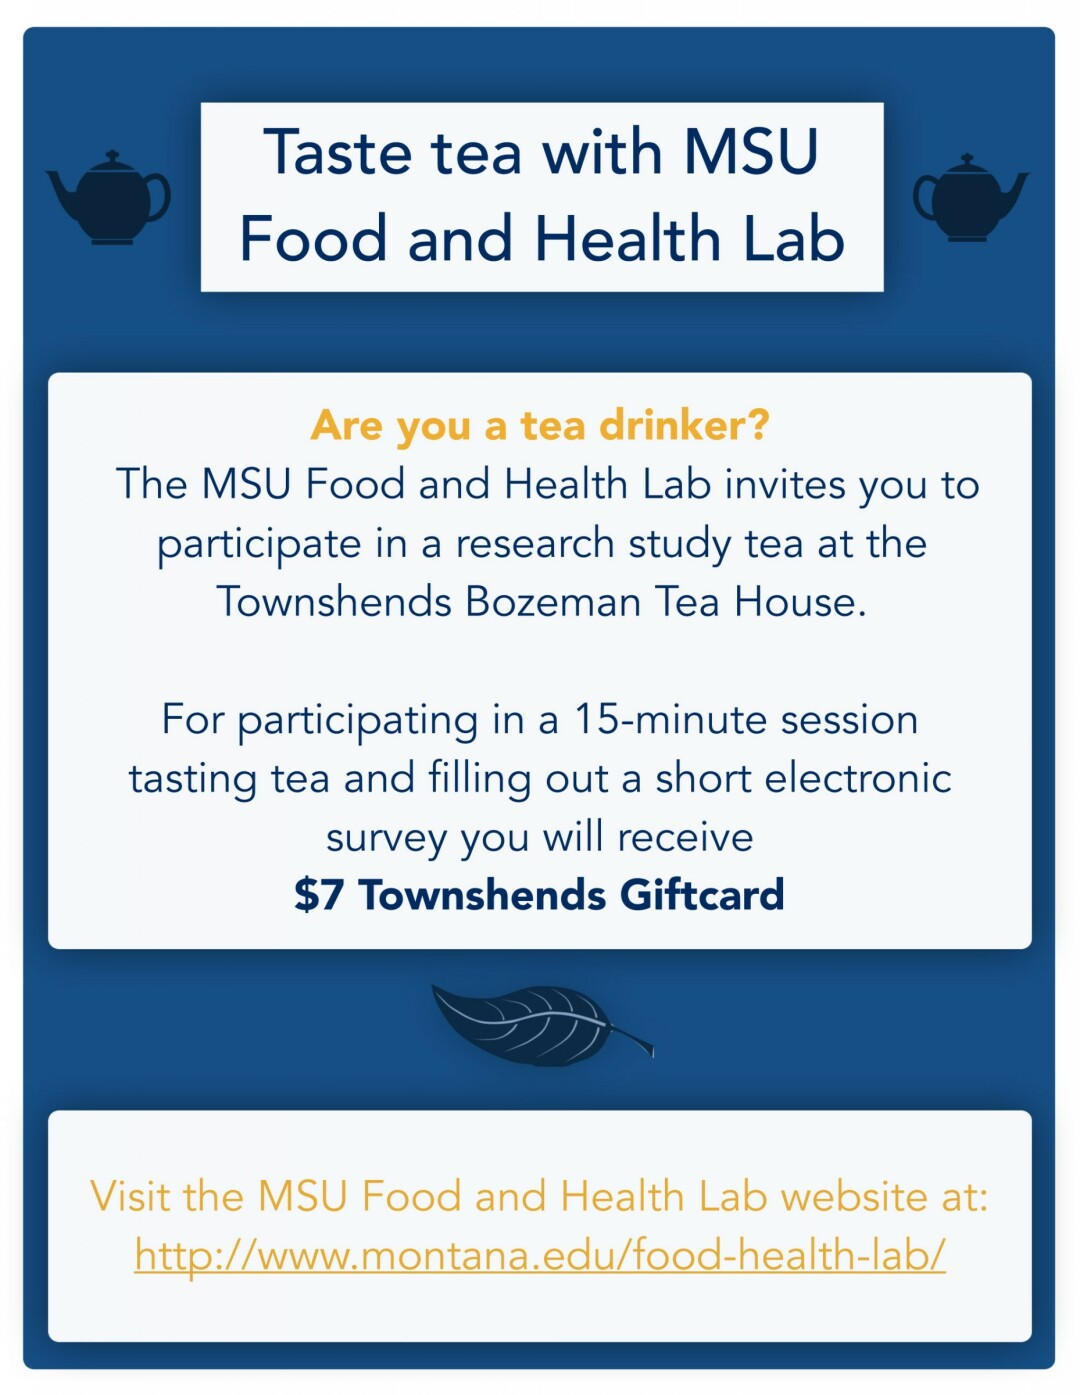 Tea Tasting Research with MSU Food and Health Lab -